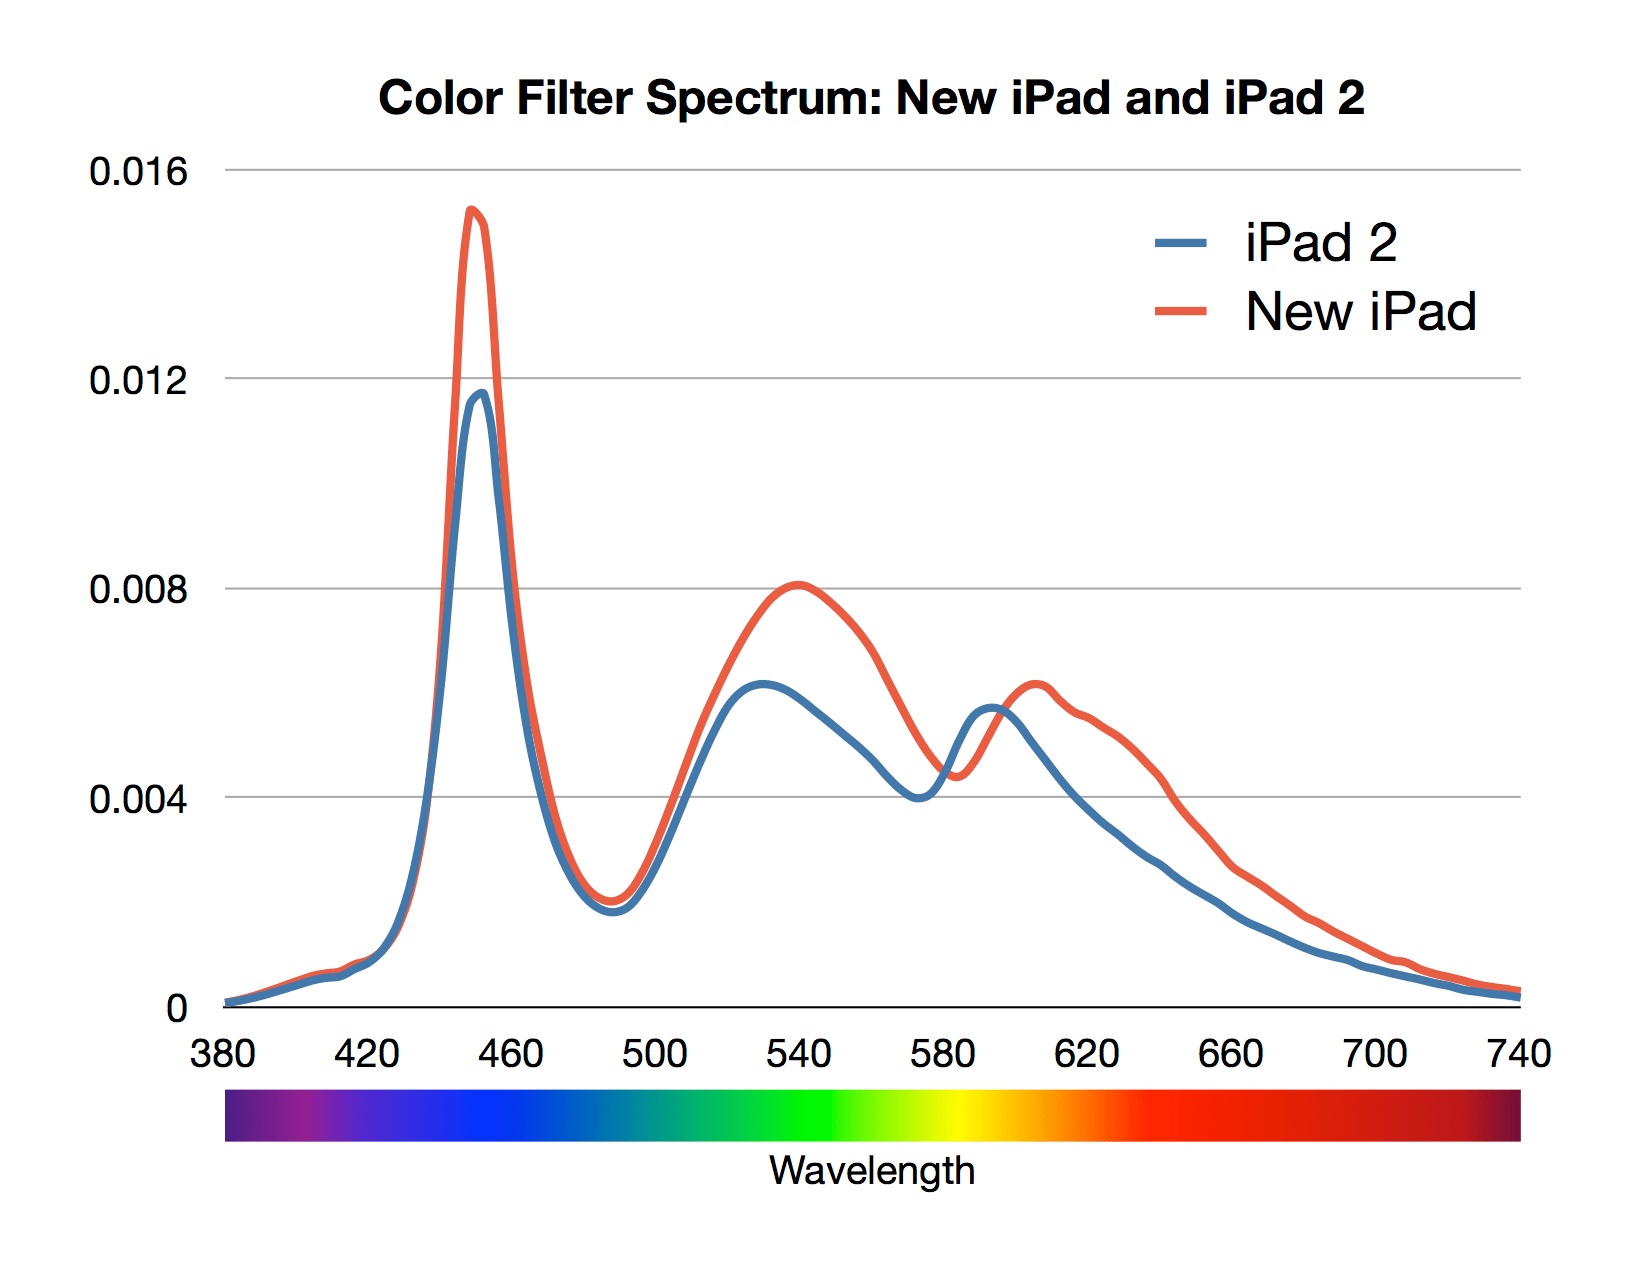 Apples new ipad boasts better colors how did they do it dot color another interesting nvjuhfo Images